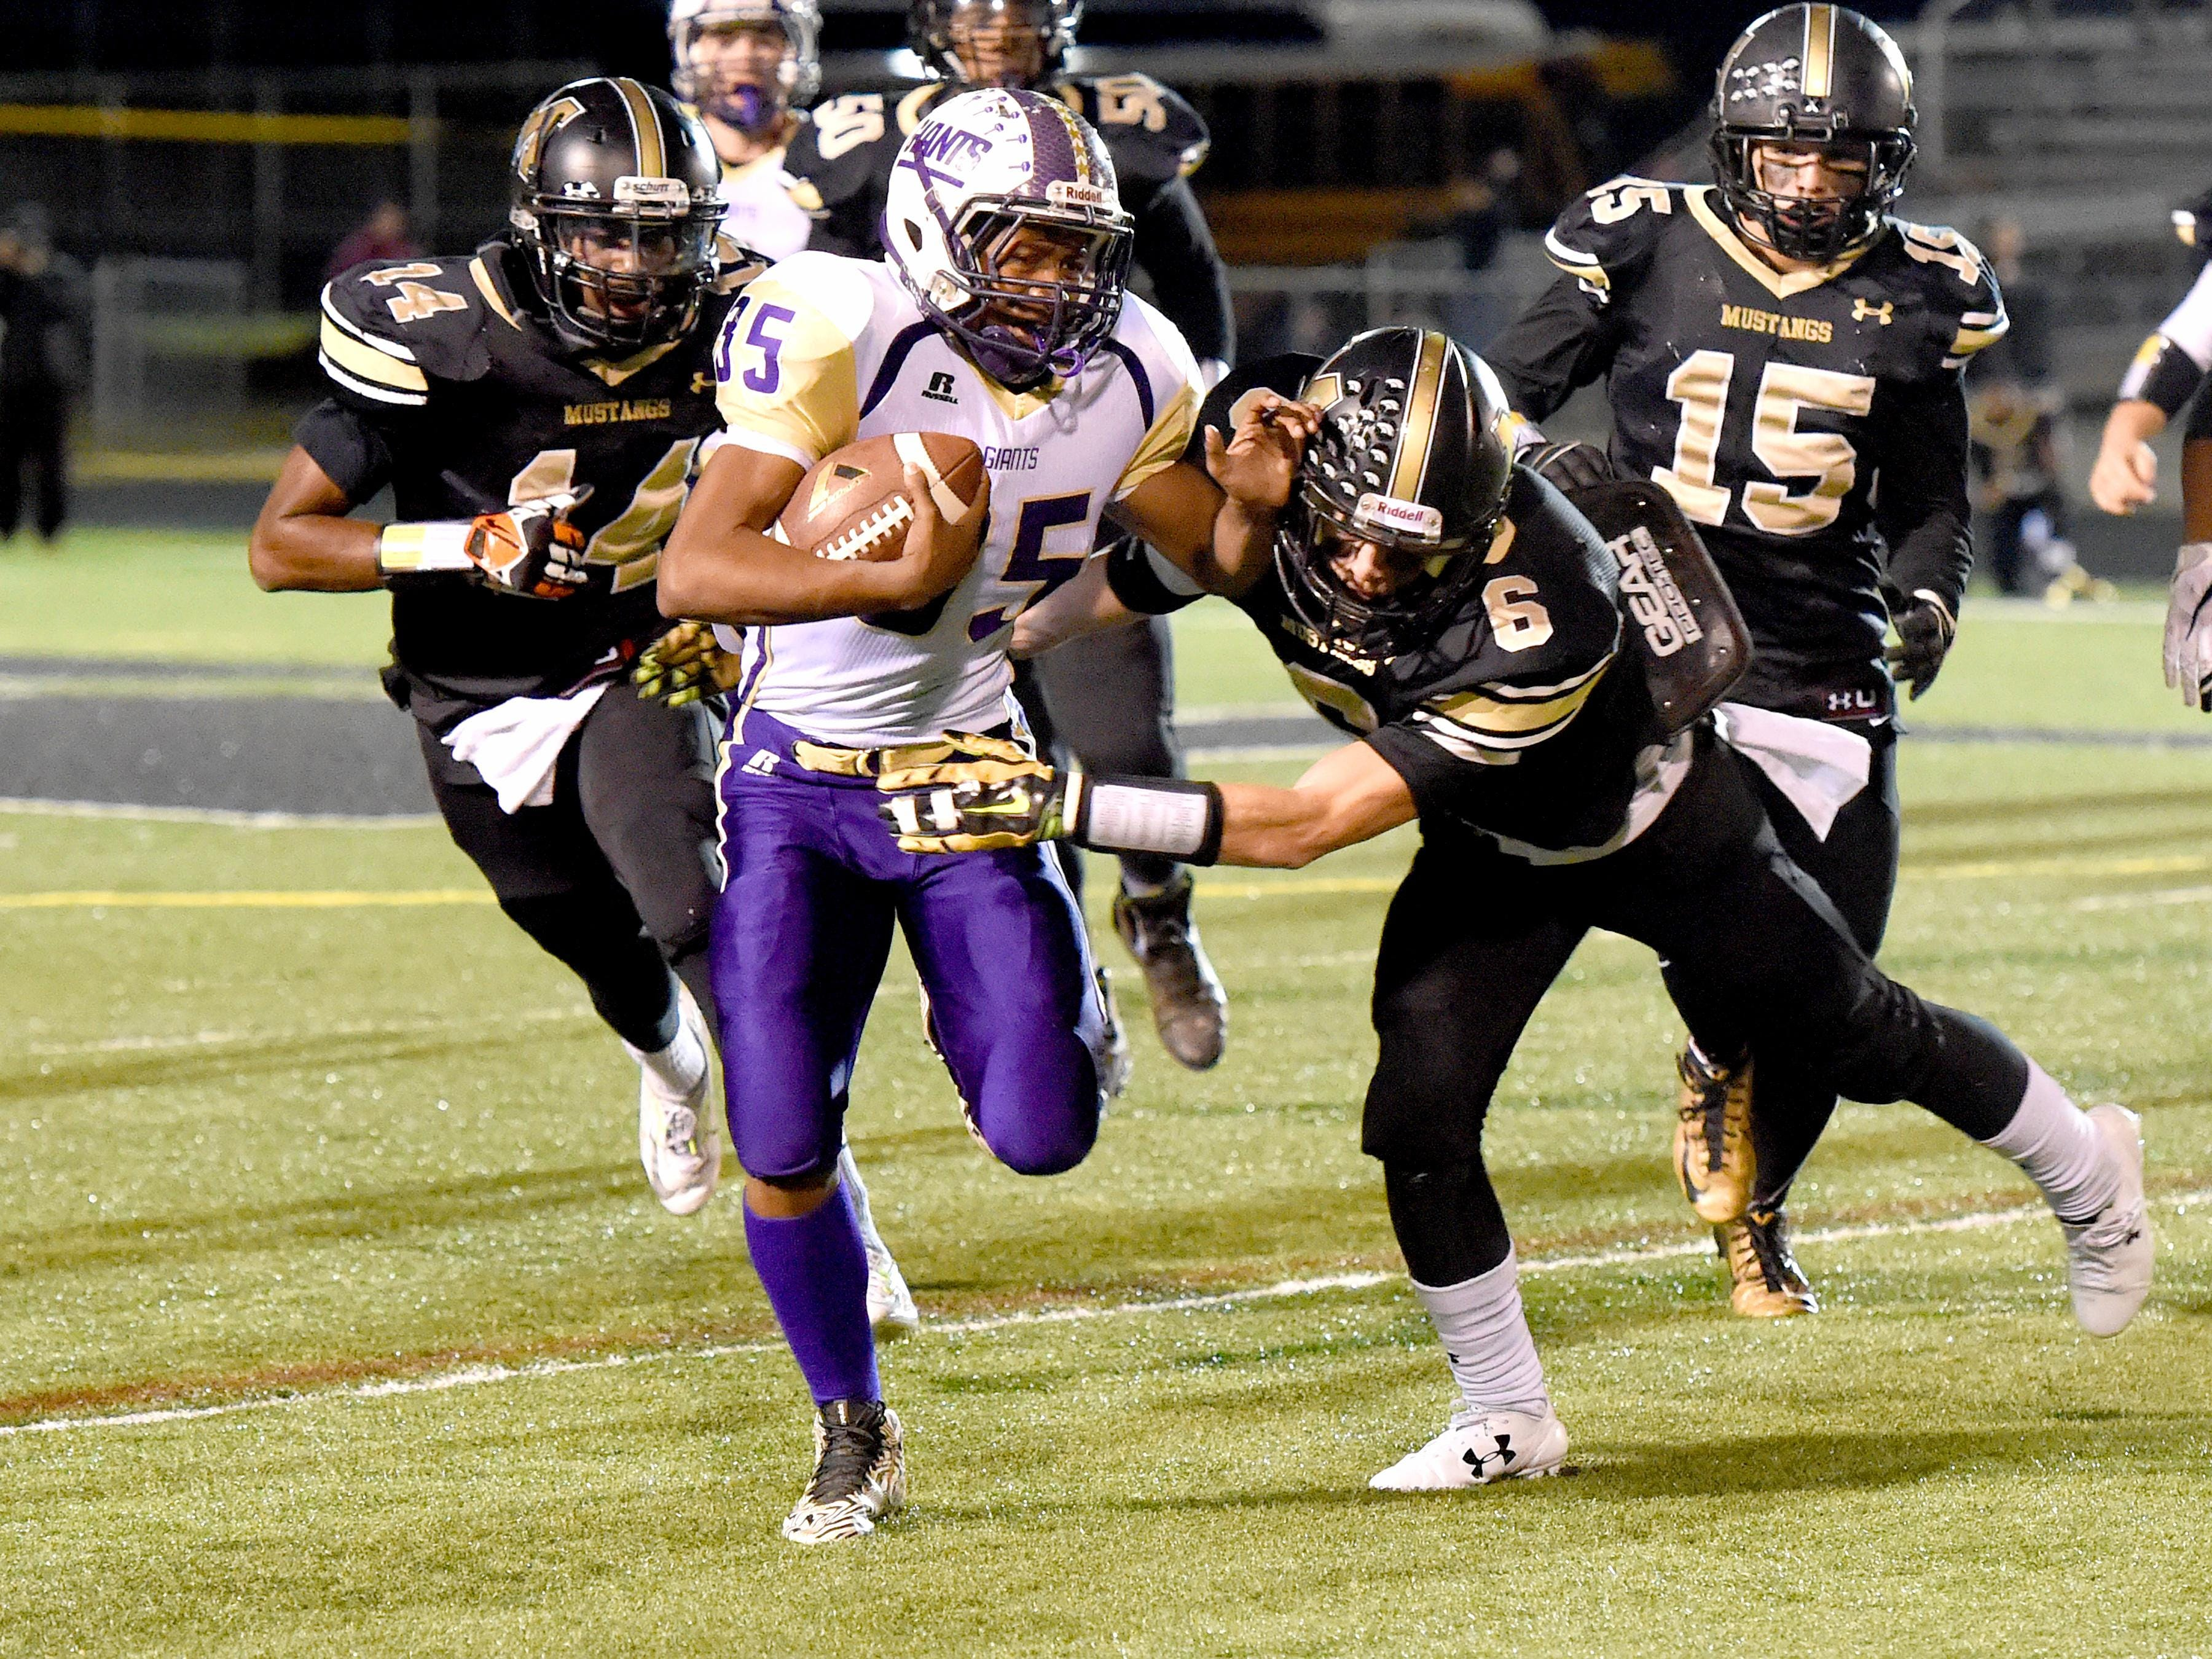 Waynesboro's Delano Green Jr. runs the football as Montecello's Seth Weaver goes for the tackle with Syrael Breckenridge and Garrett Porterfield just behind during a 3A West regional football game played in Charlottesville on Friday, Nov. 13, 2015.